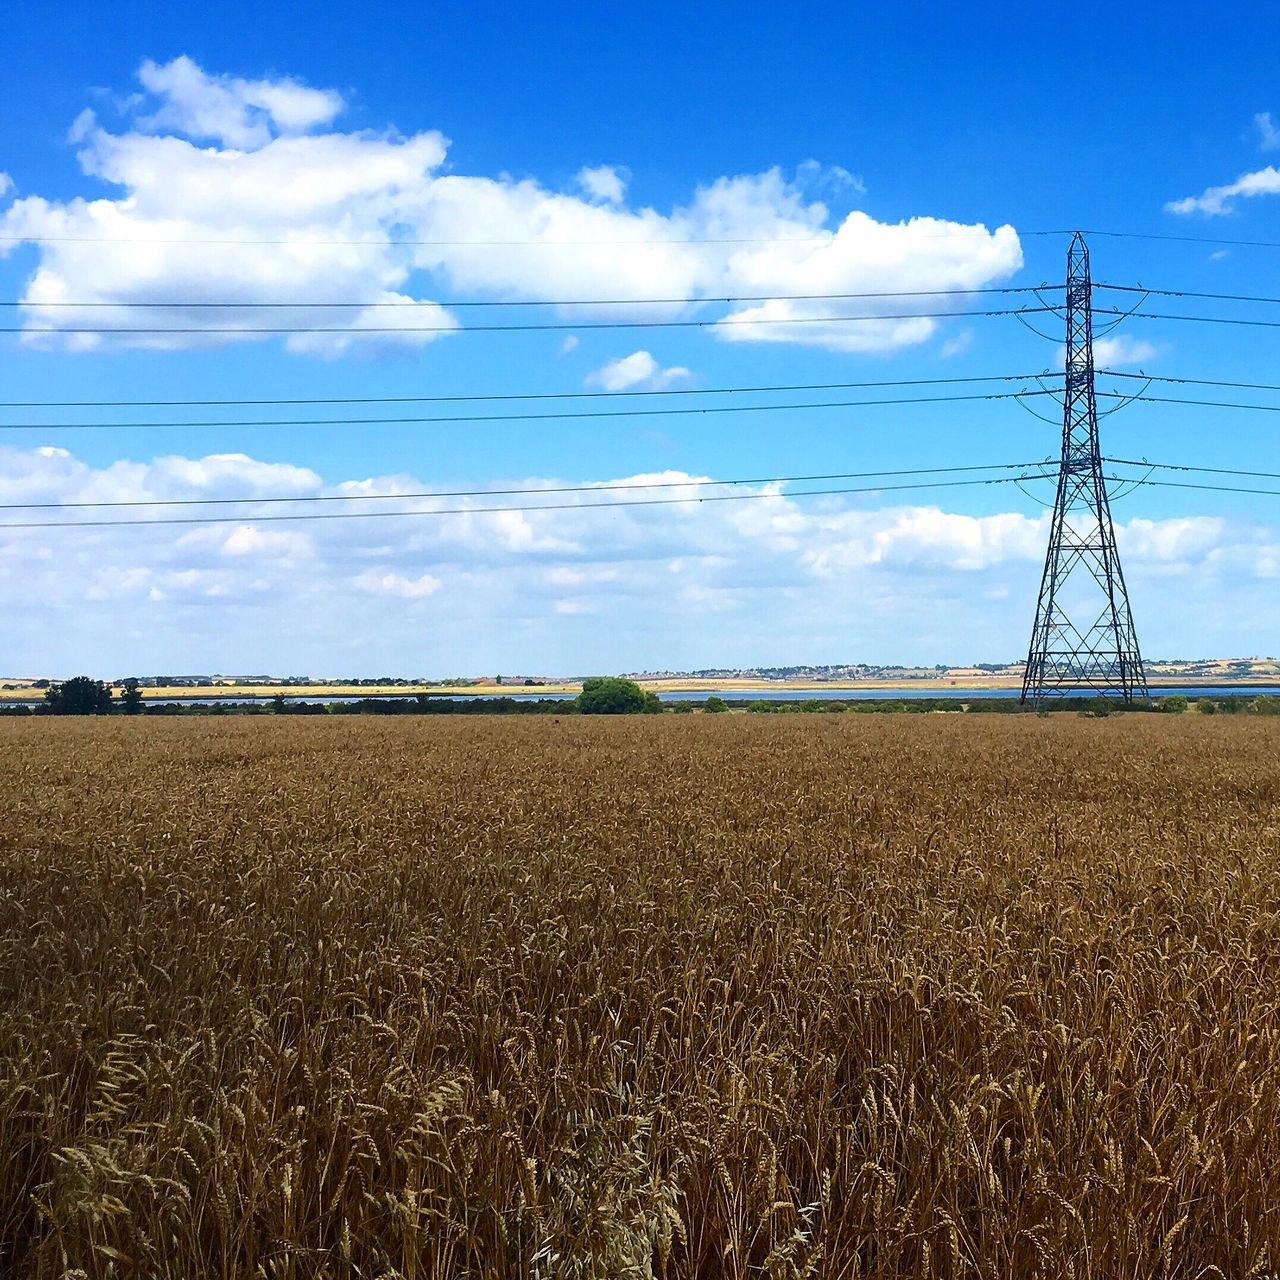 sky, field, cloud - sky, landscape, day, tranquility, connection, agriculture, no people, rural scene, tranquil scene, electricity pylon, cable, nature, beauty in nature, growth, blue, scenics, outdoors, technology